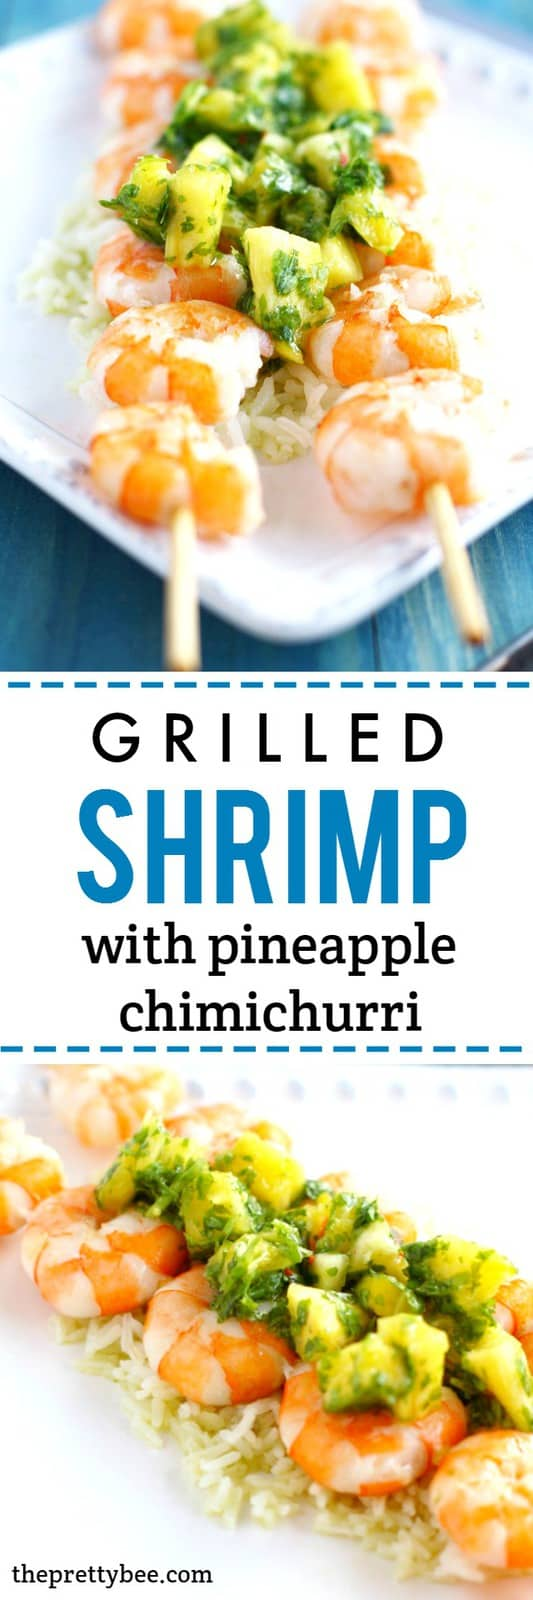 Grilled shrimp with pineapple chimichurri is a fresh and healthy meal for summer!